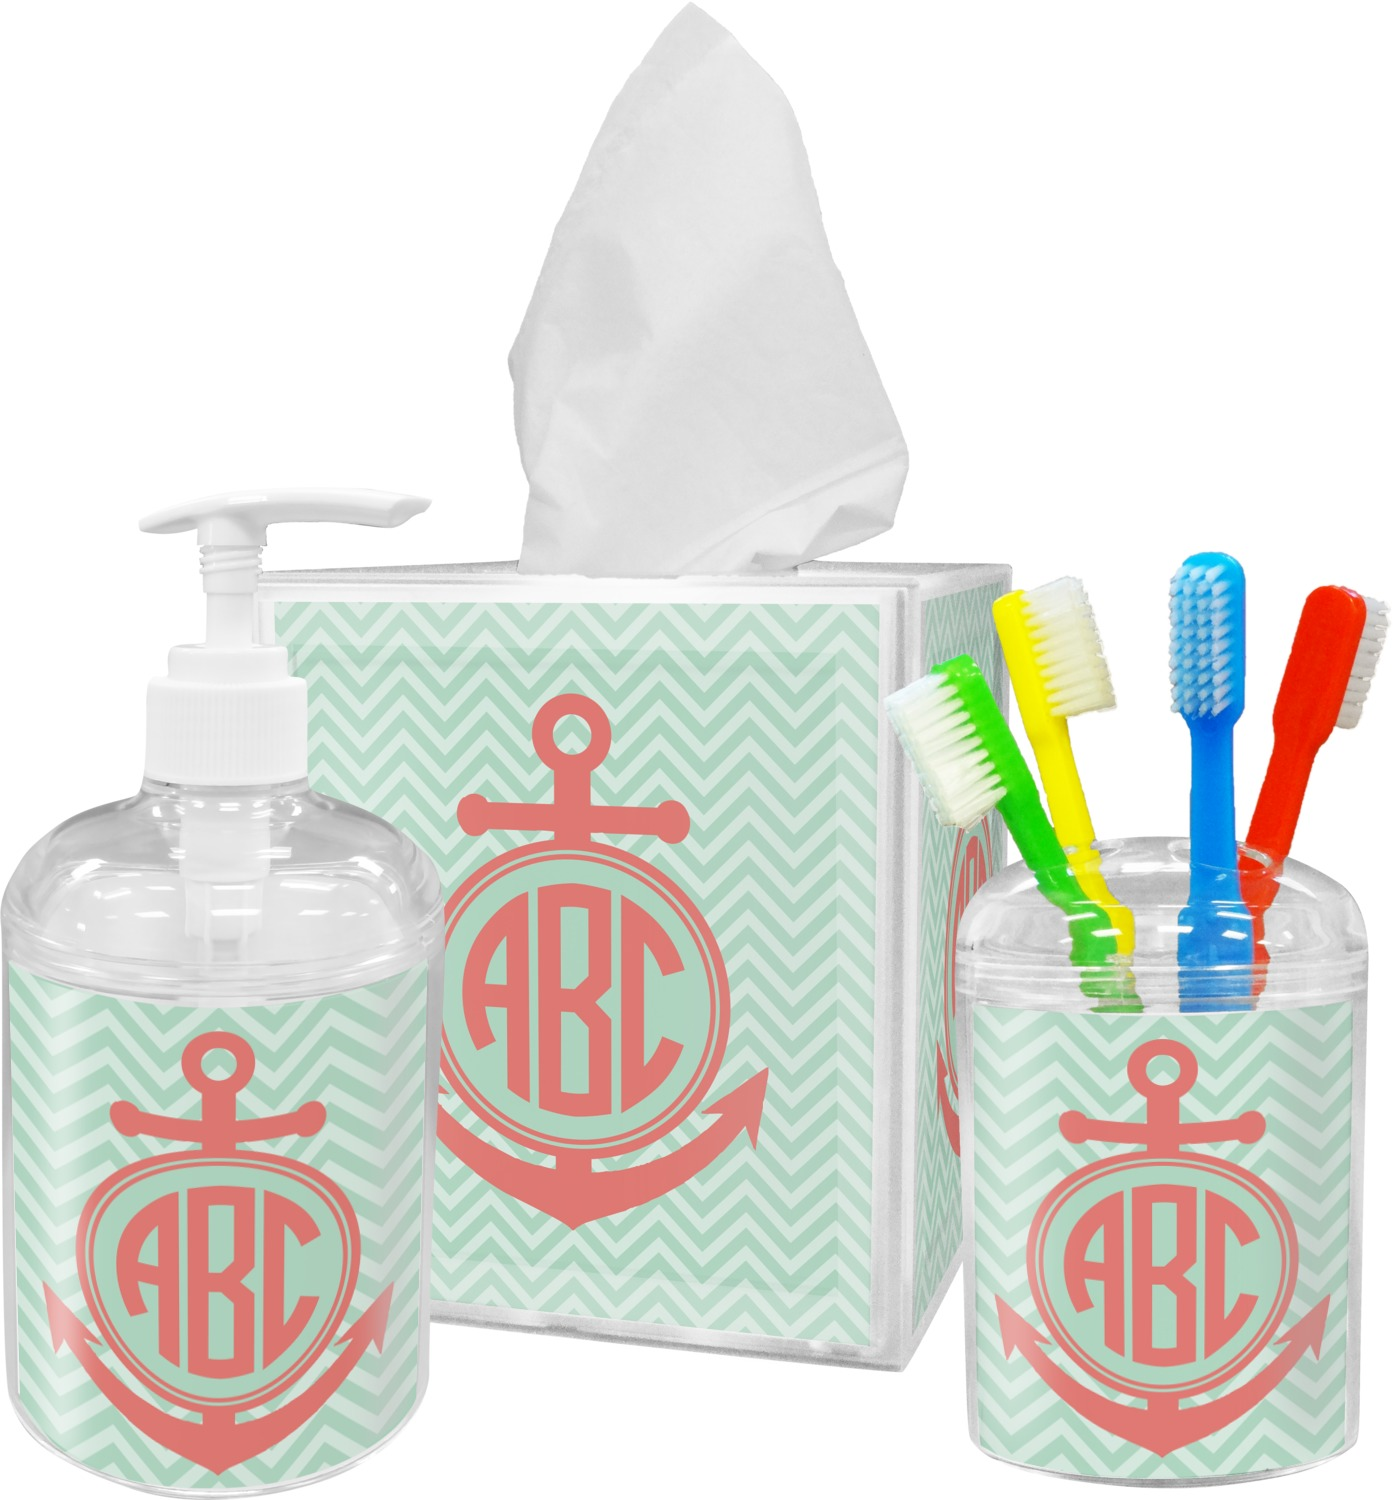 Bathroom Accessories Chevron Anchor Bathroom Accessories Set Personalized